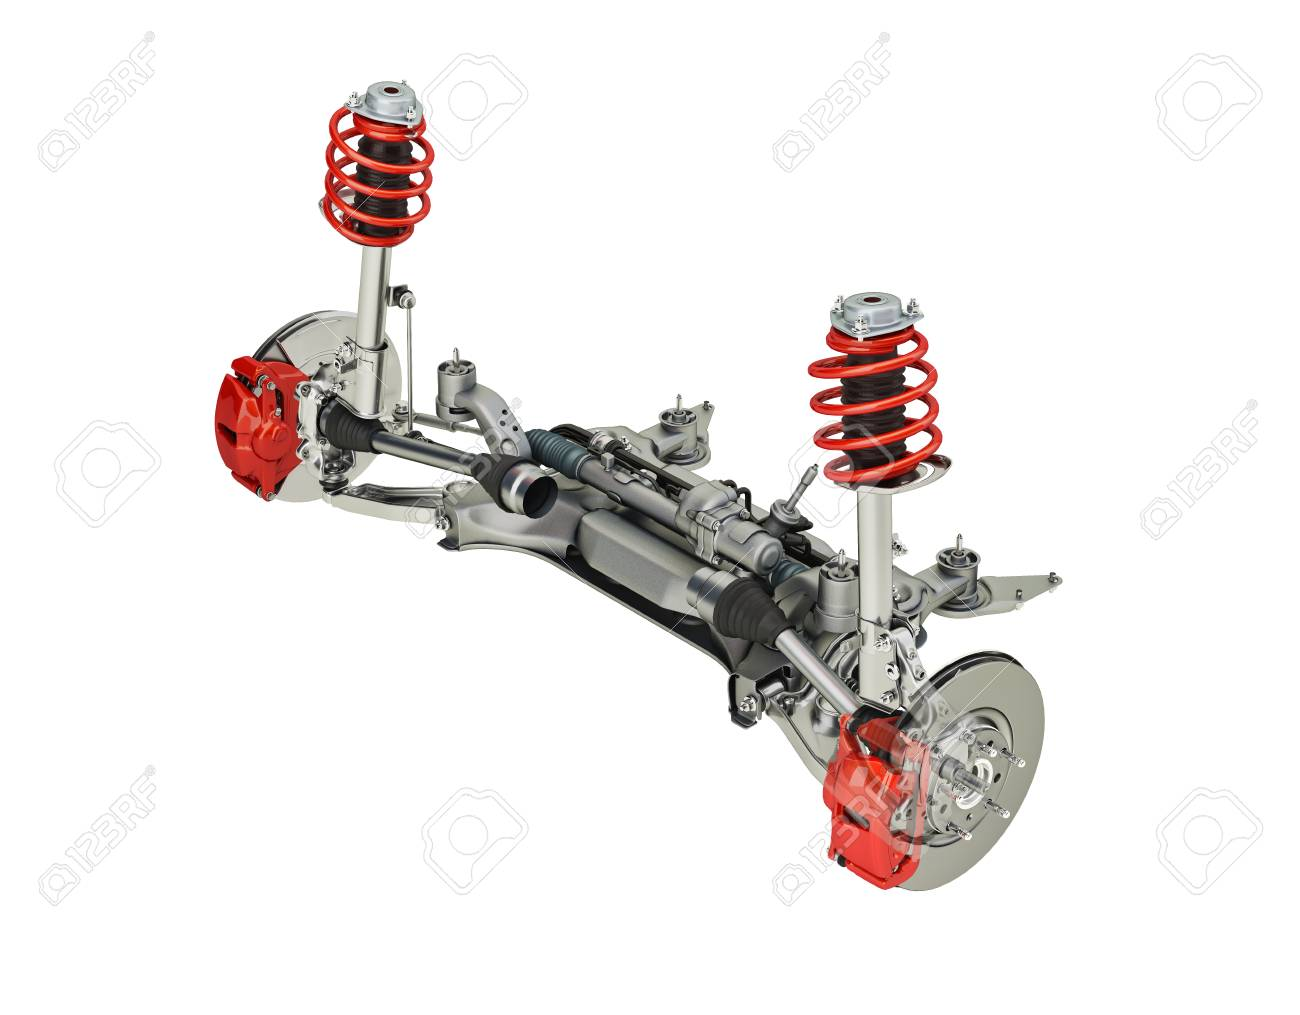 Multi link front SUV car suspension, with brakes. perspective view. On white background, clipping path included. 3D rendering. - 85699289